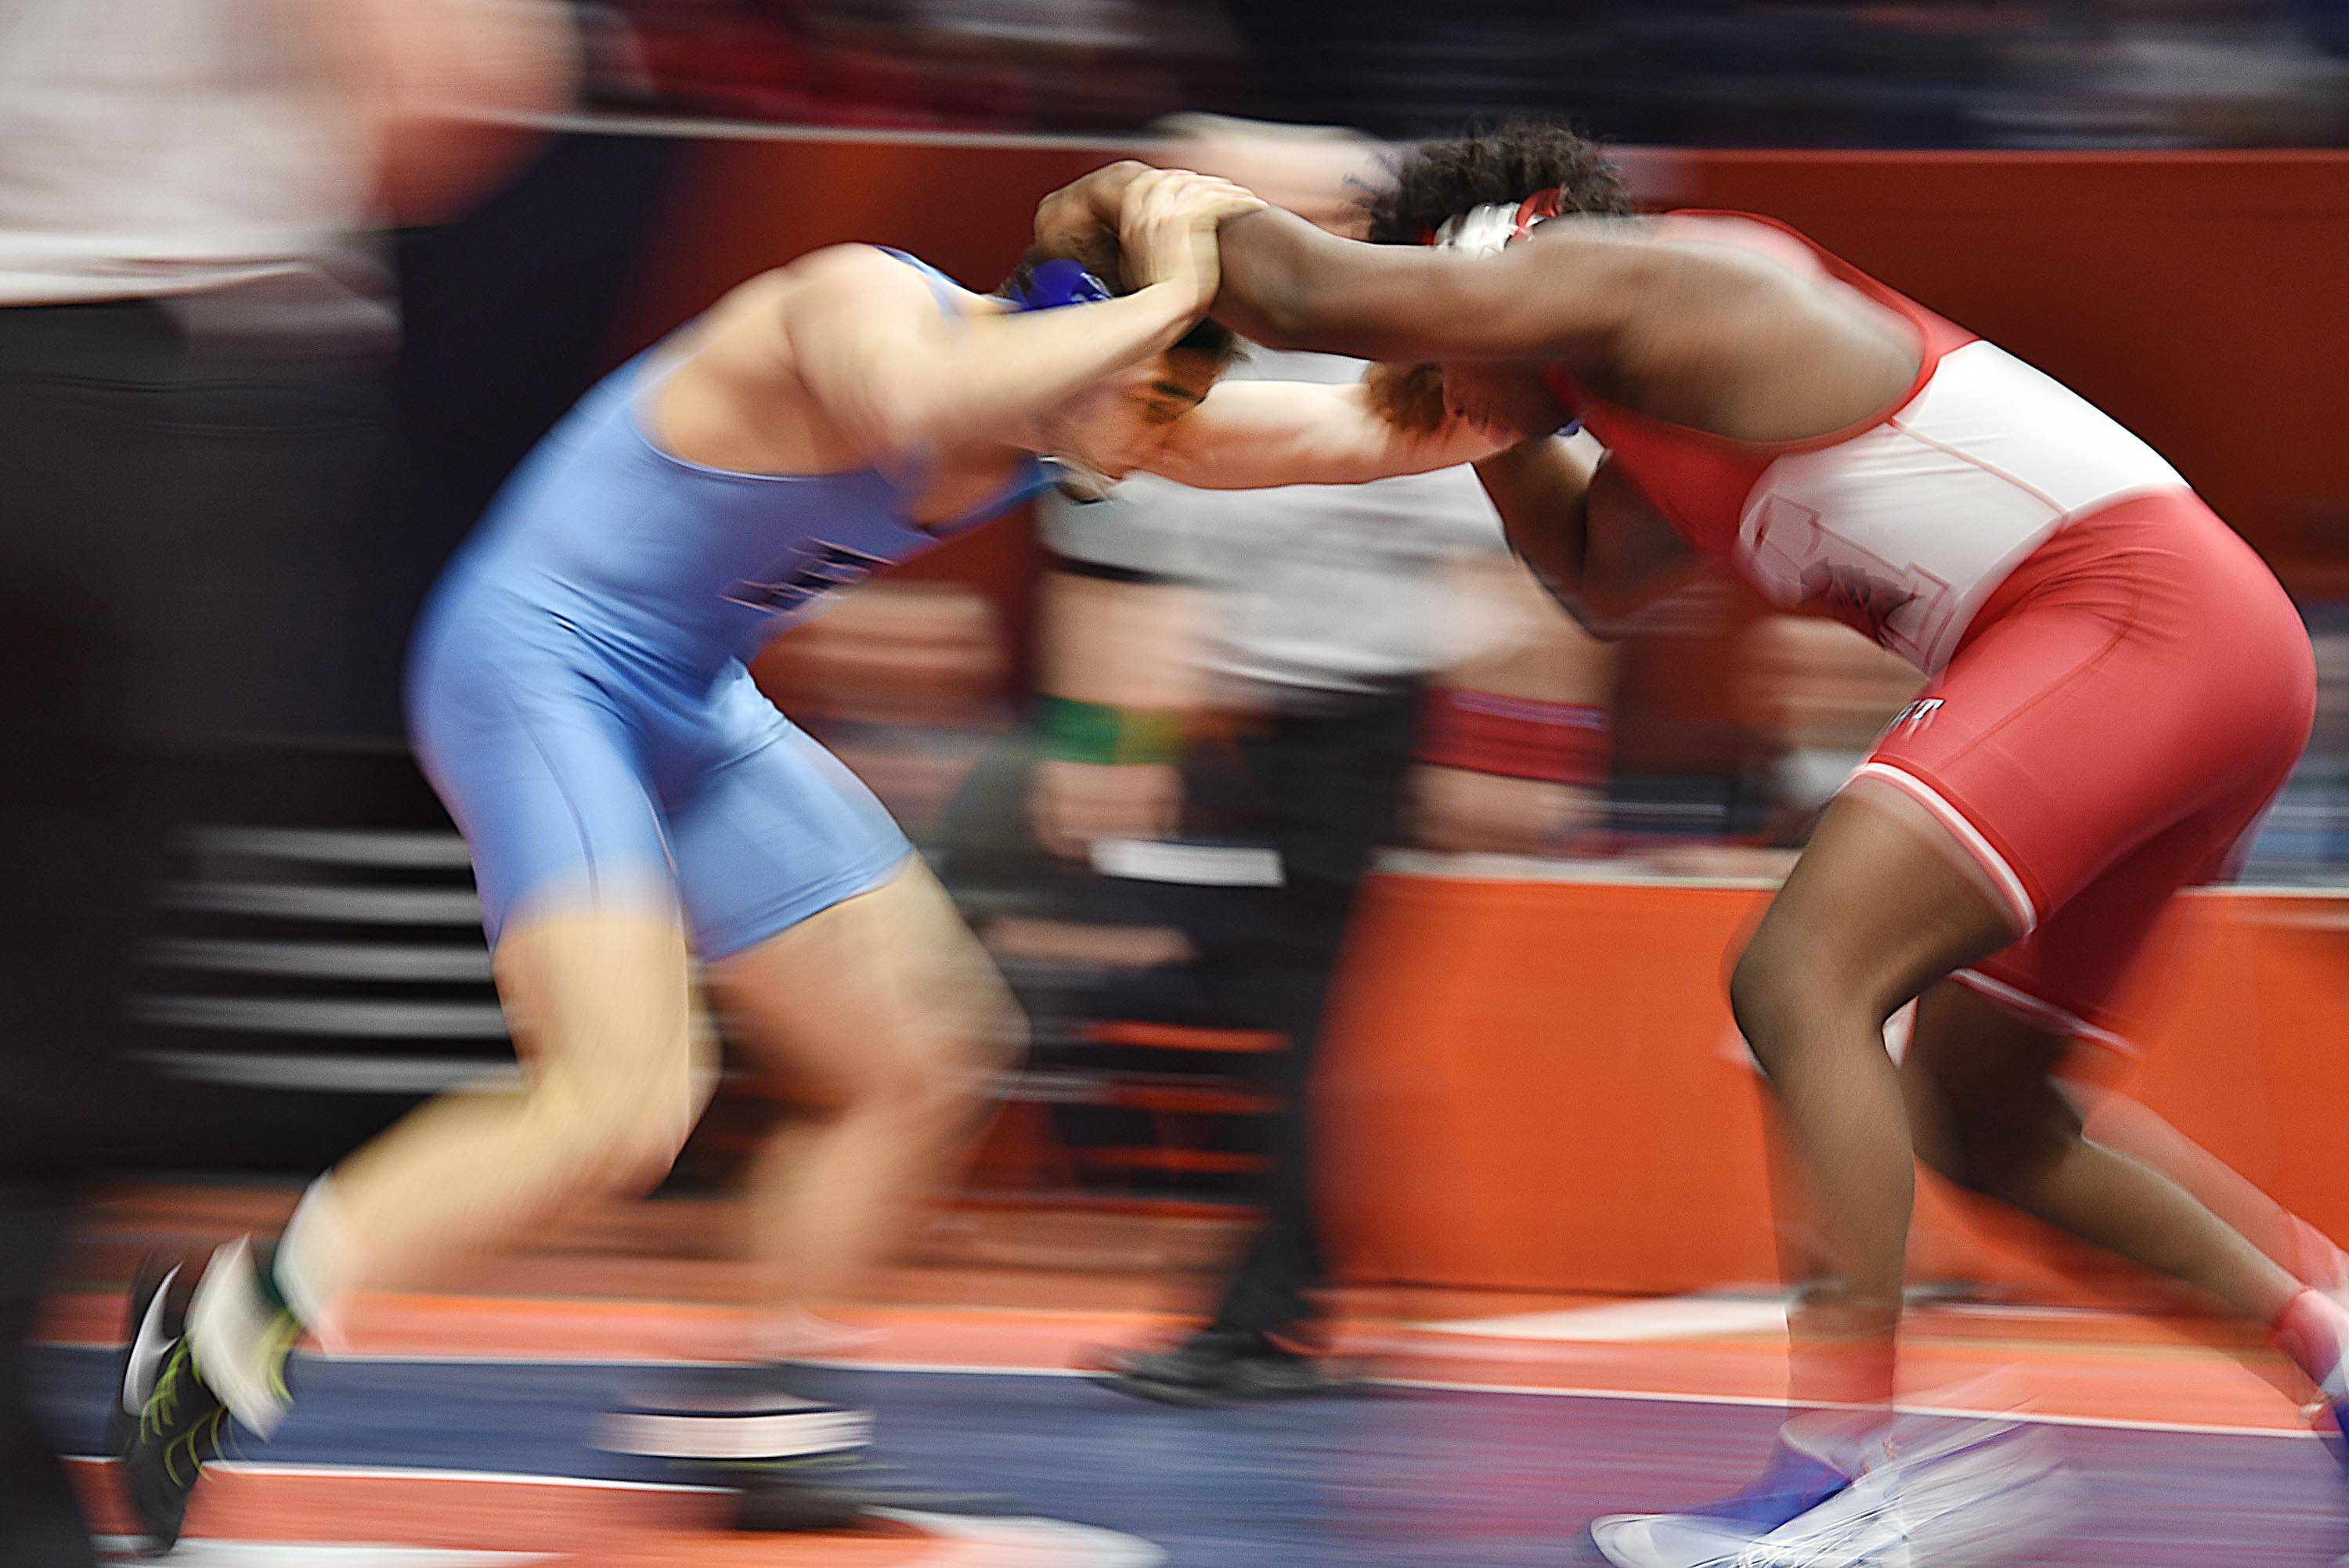 Prospect's Matt Wroblewski and Marist's Diata Drayton scramble for position Saturday in the Class 3A state championship 220-pound bout during the wrestling state final in Champaign. Wroblewski, a senior, won 8-4.